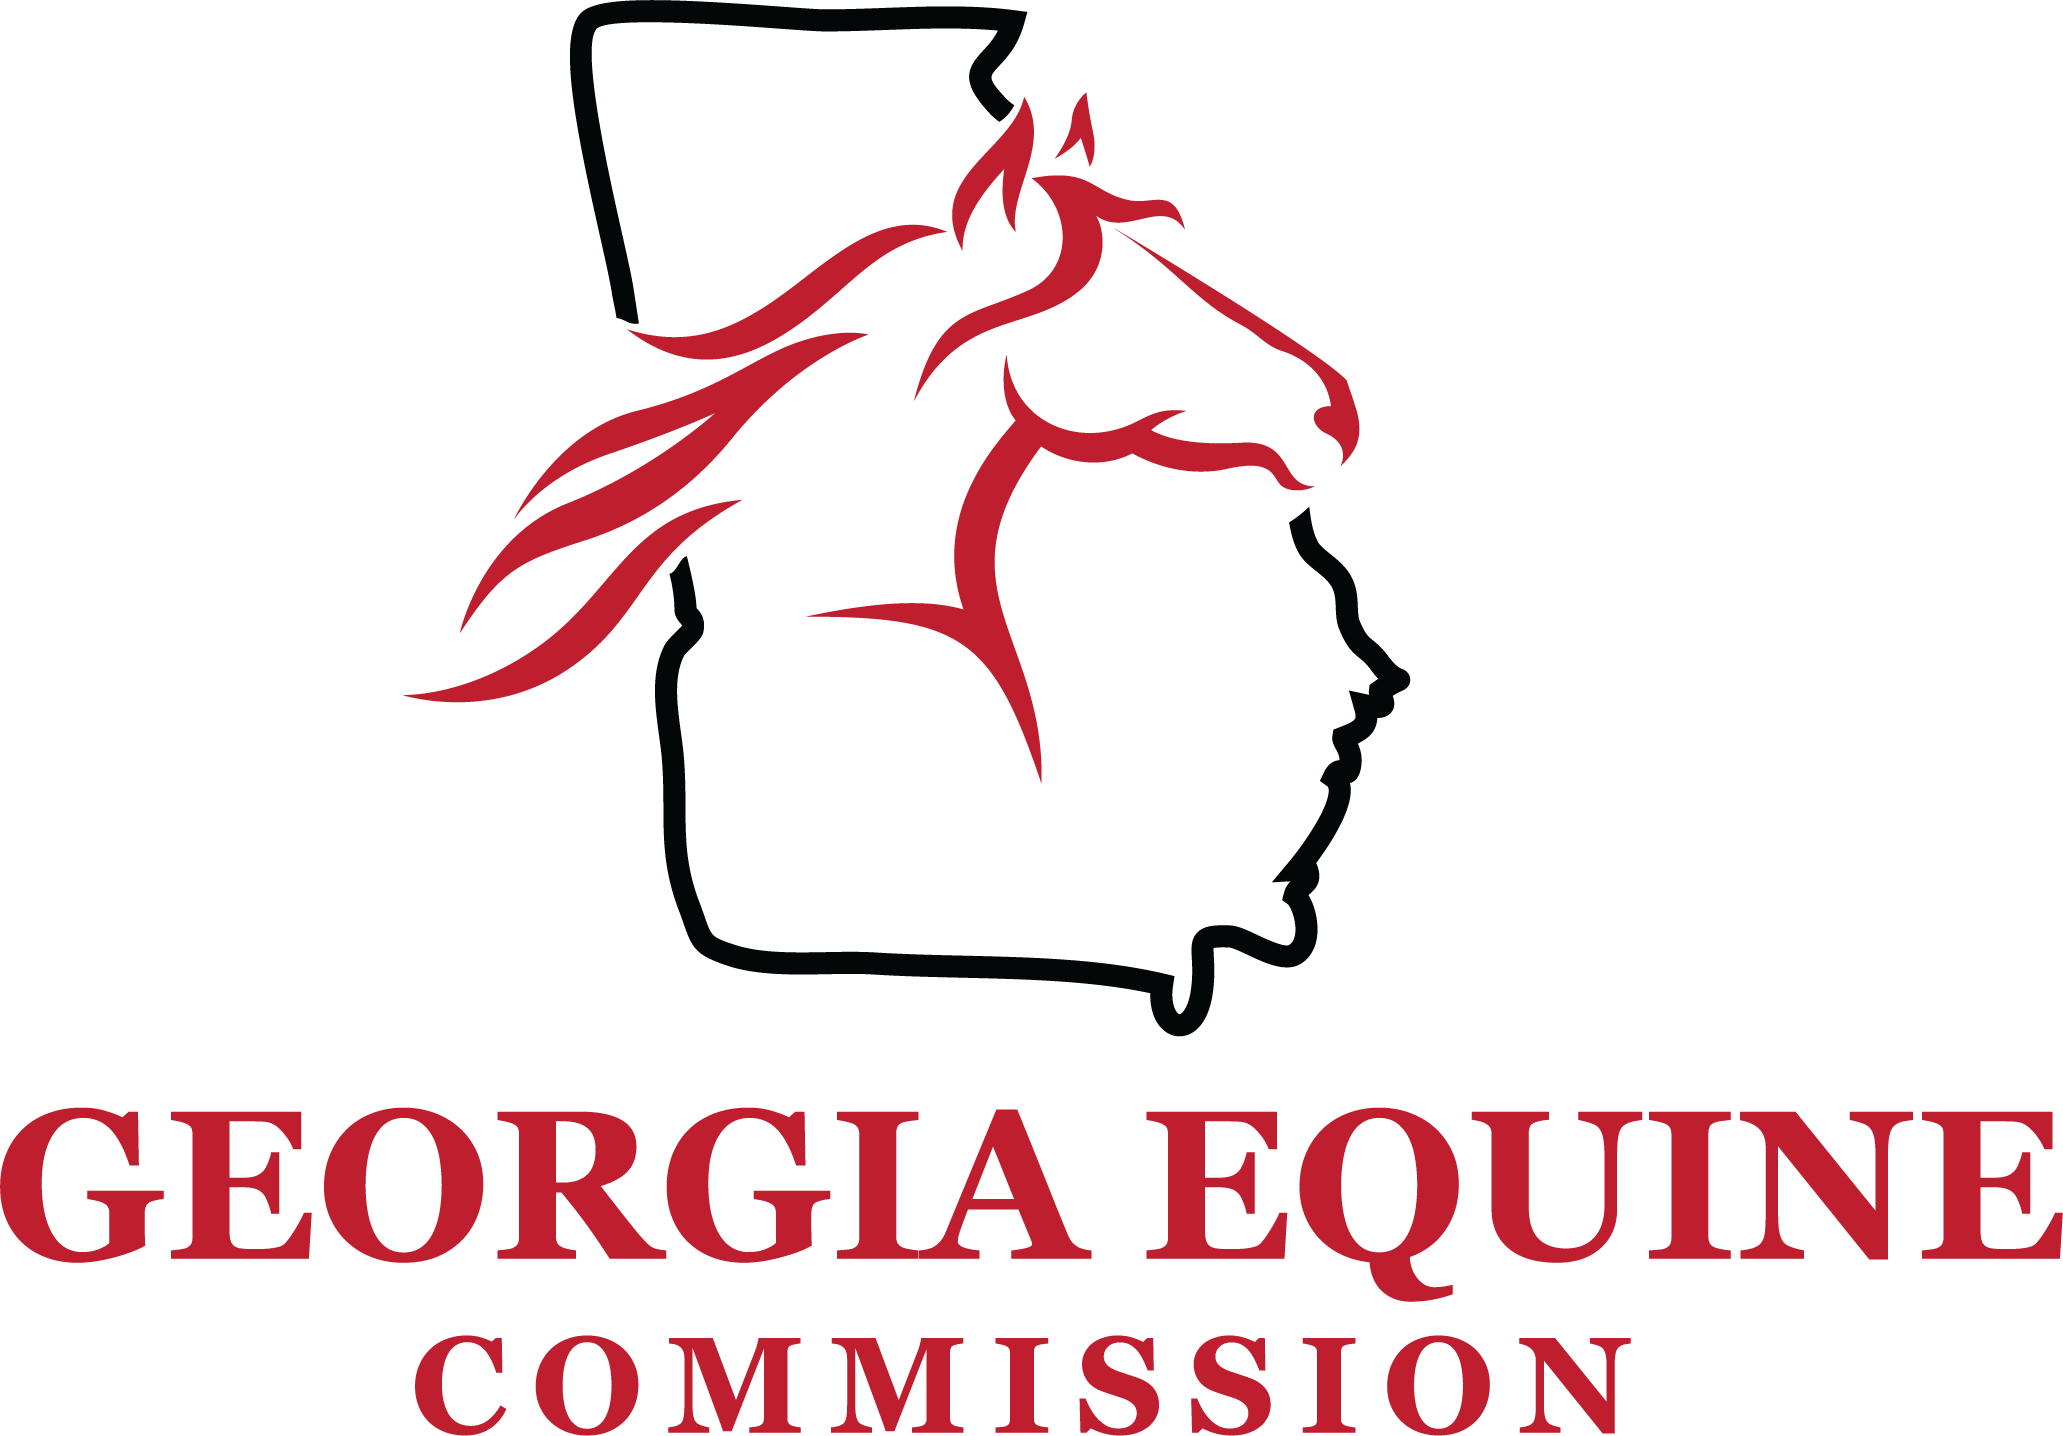 Georgia Equine Commodity Commission